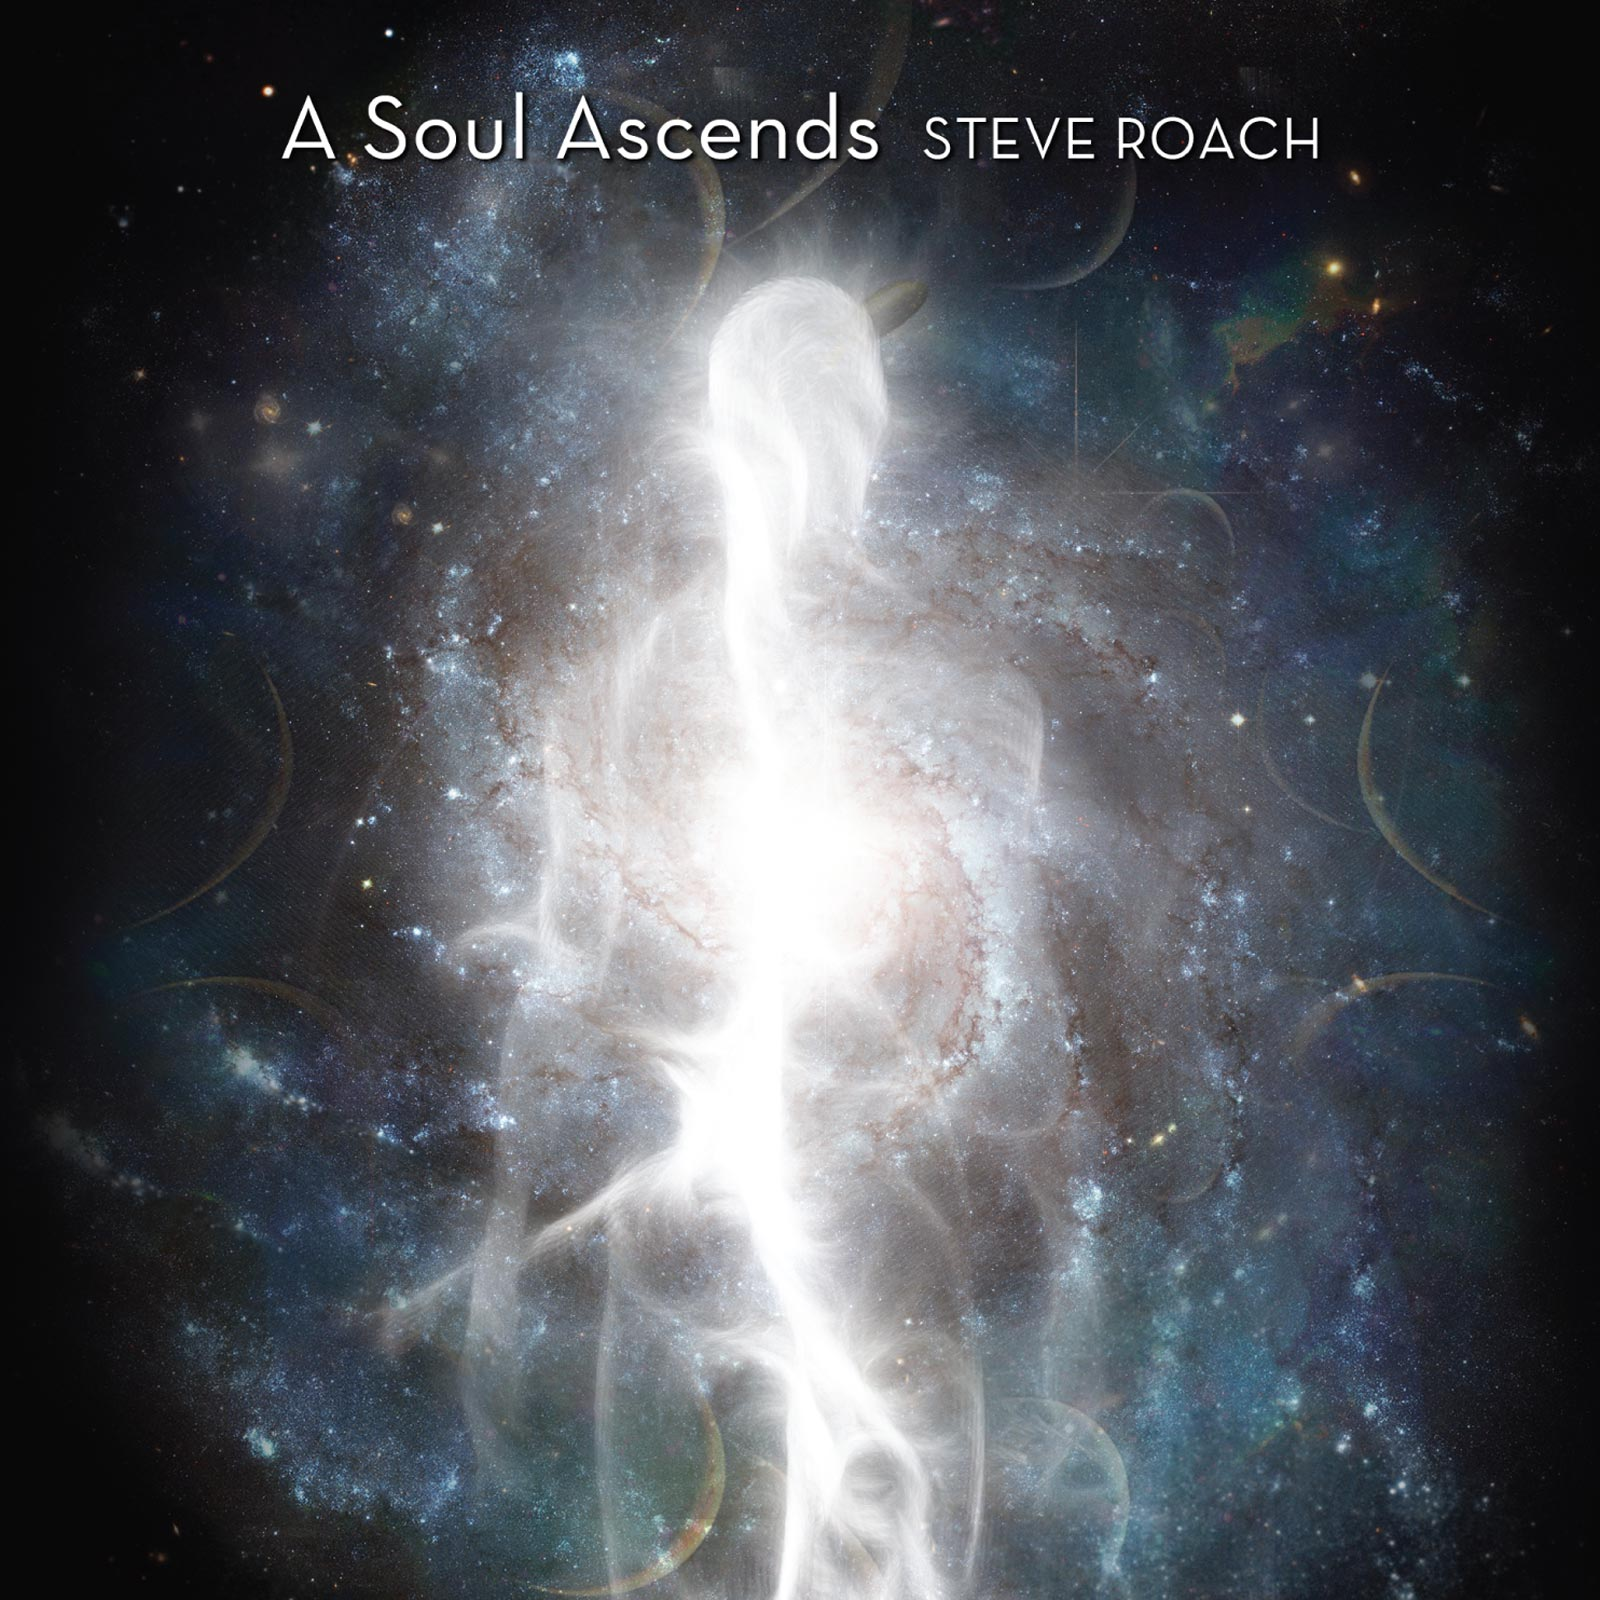 steve roach soul ascends album cover unsized